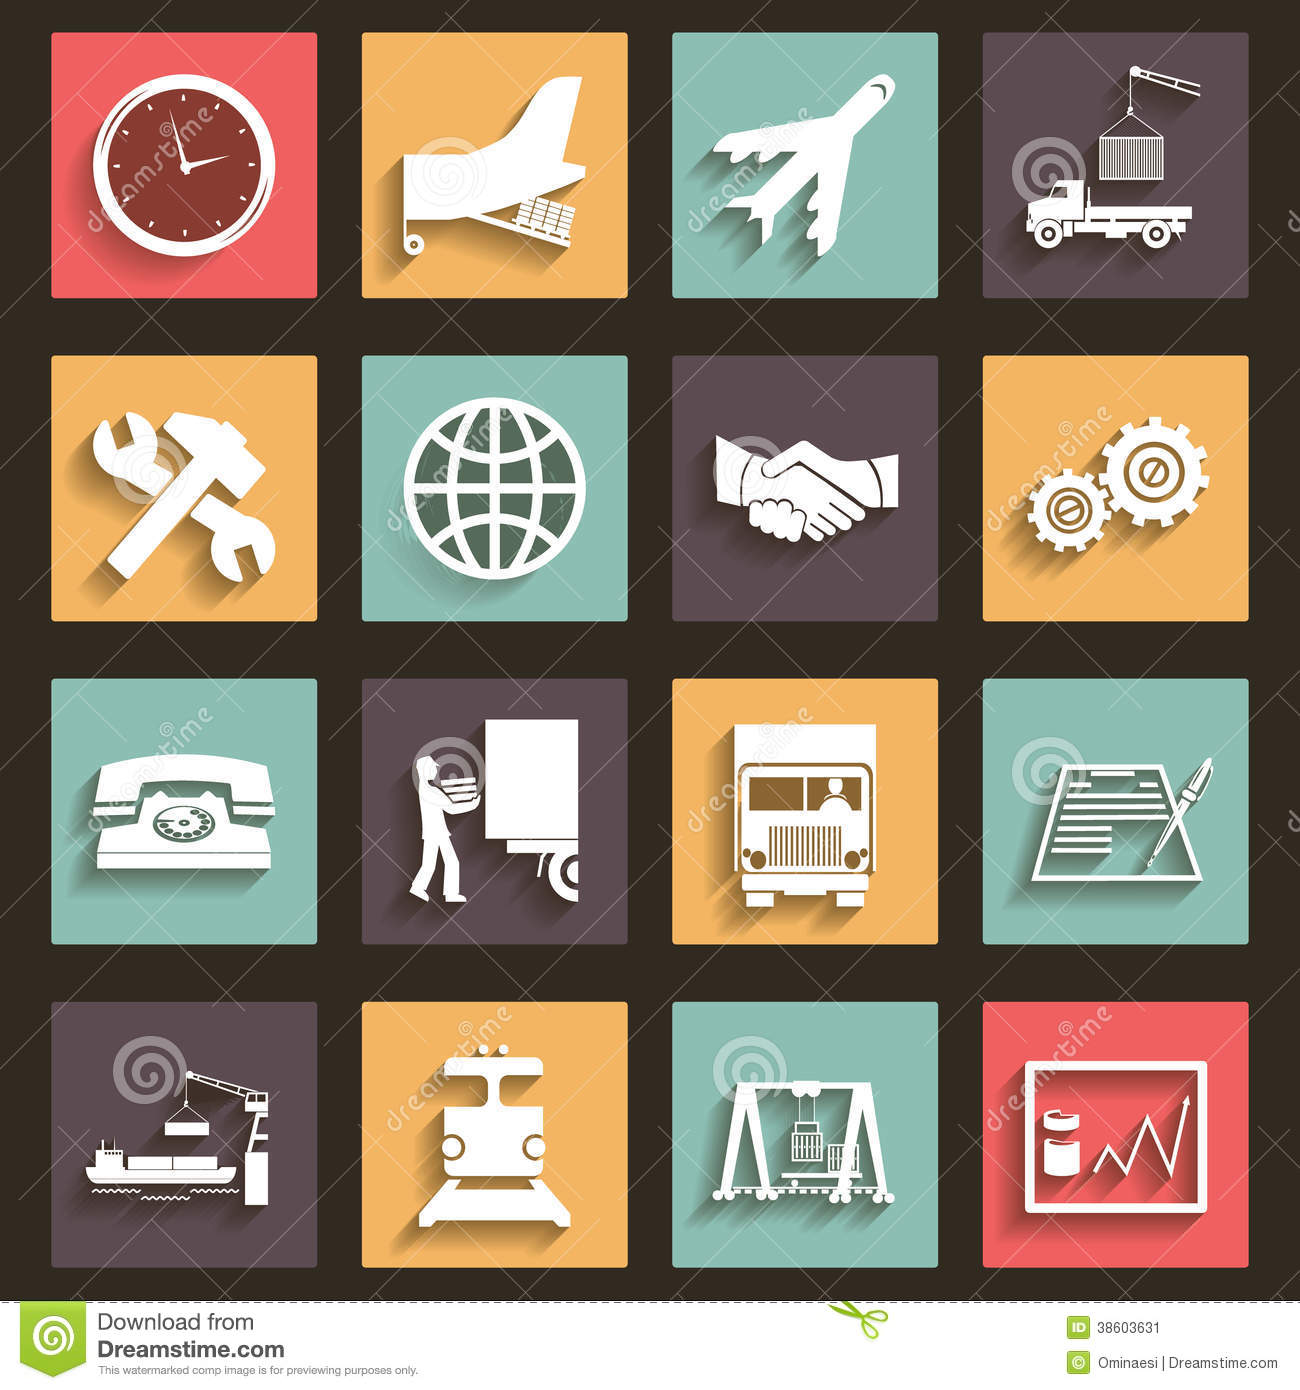 Download Shipment And Transportation Icons Symbols Flat Design Style Vector Stock Vector - Illustration of hands, repair: 38603631